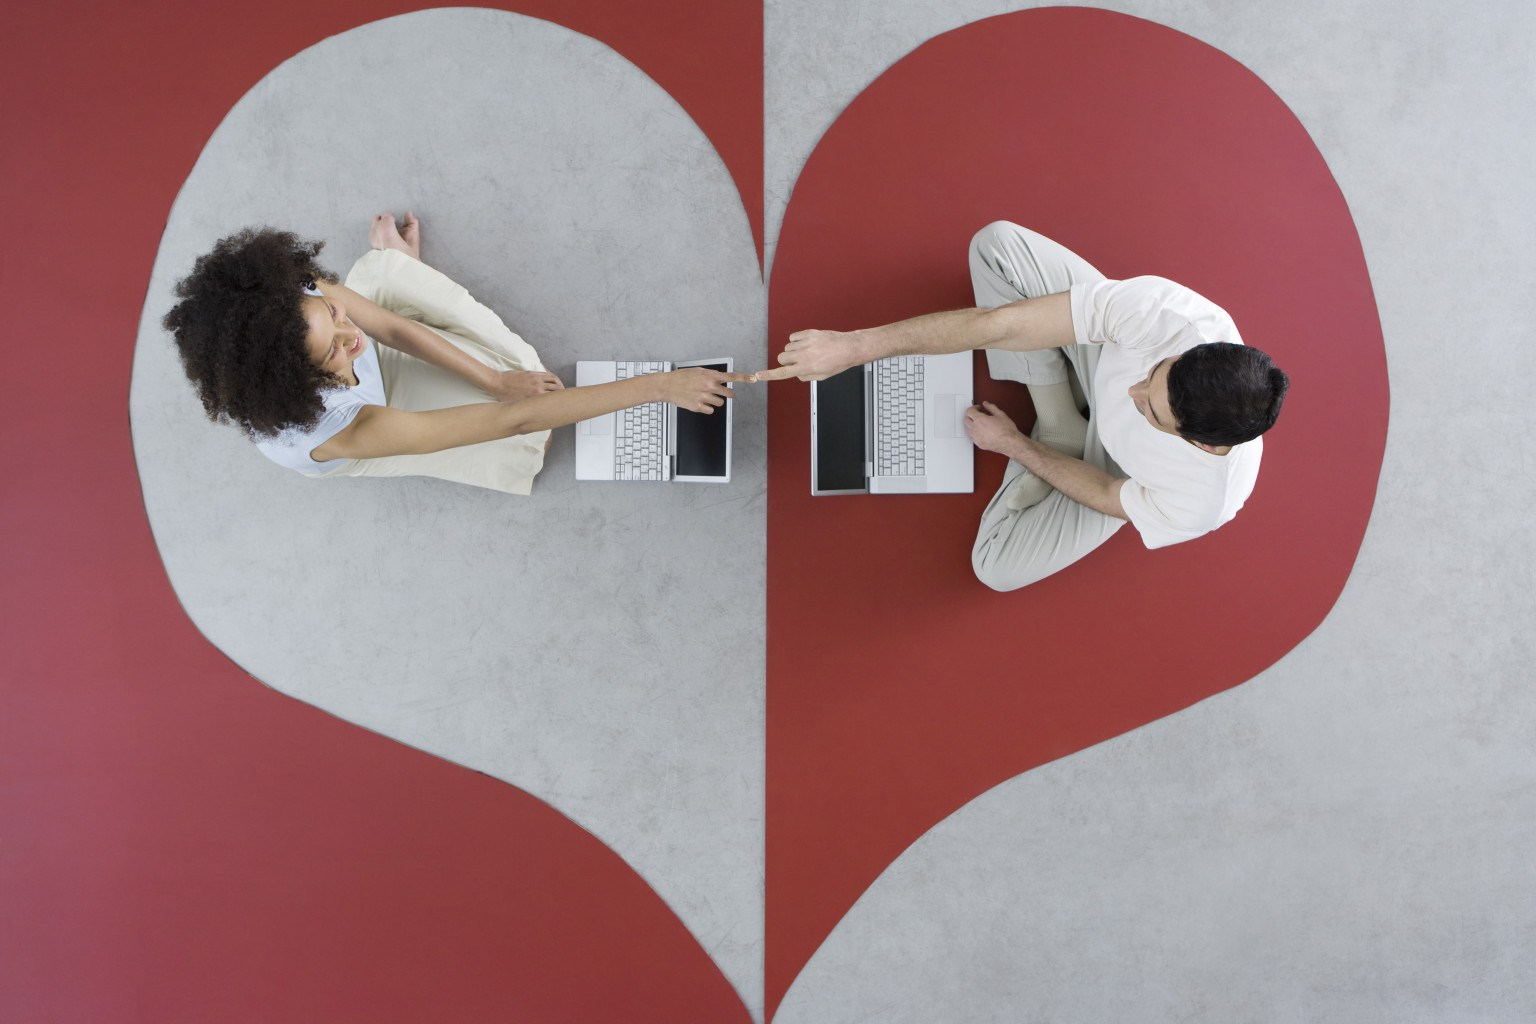 Couple sitting face to face with laptop computers on heart shape, touching fingers, overhead view